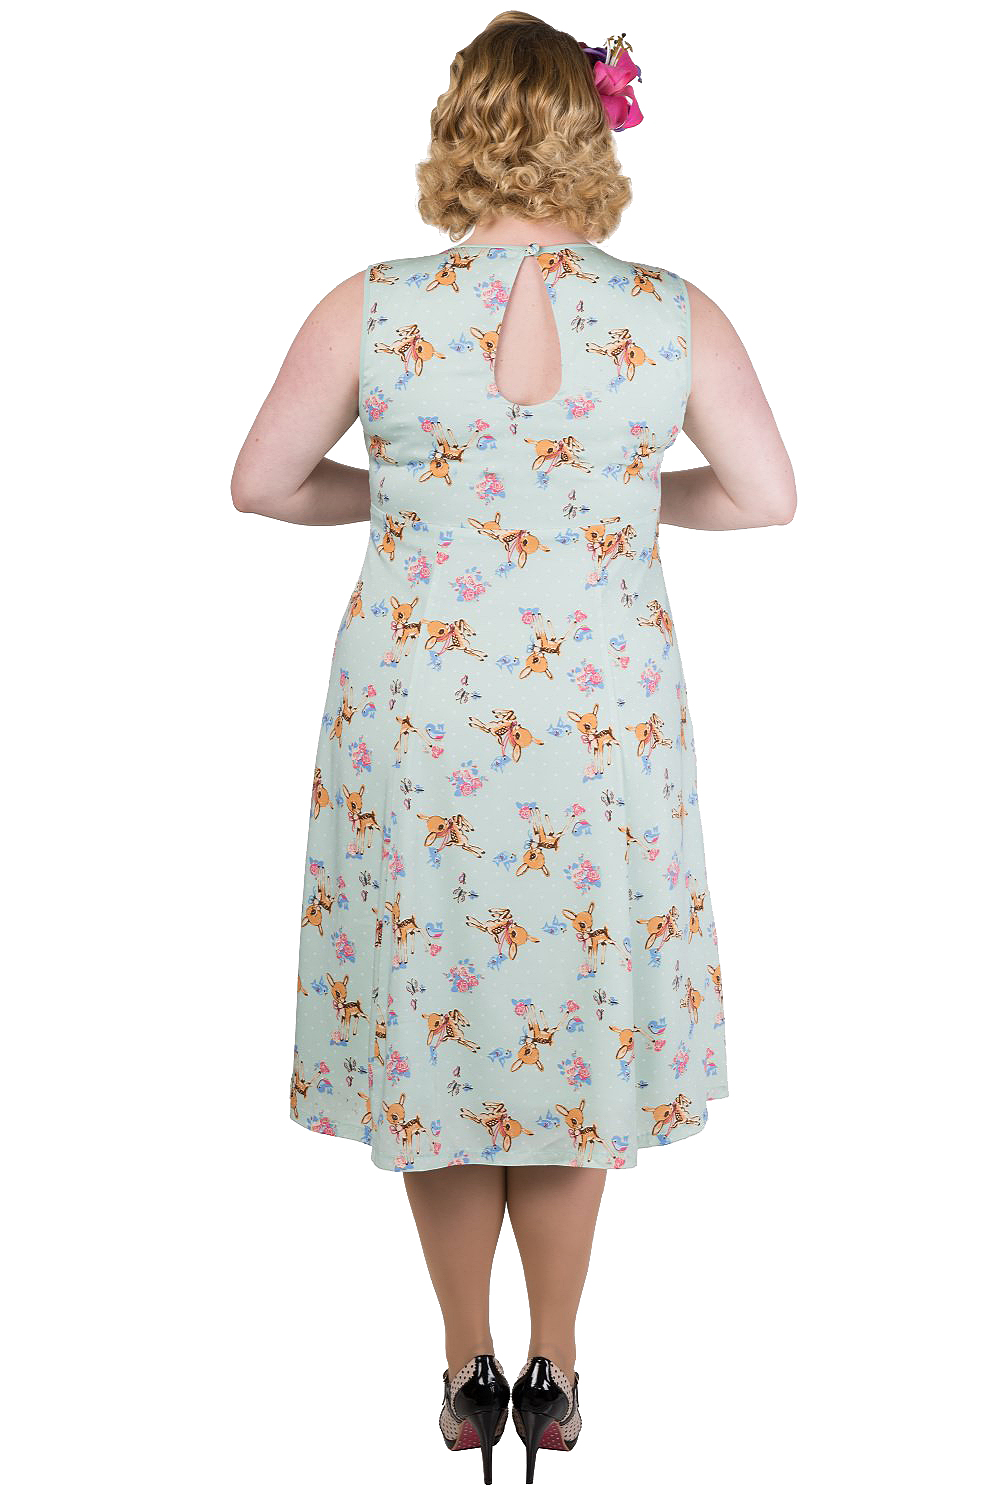 Banned Whimsical Bambi Plus Size Dress